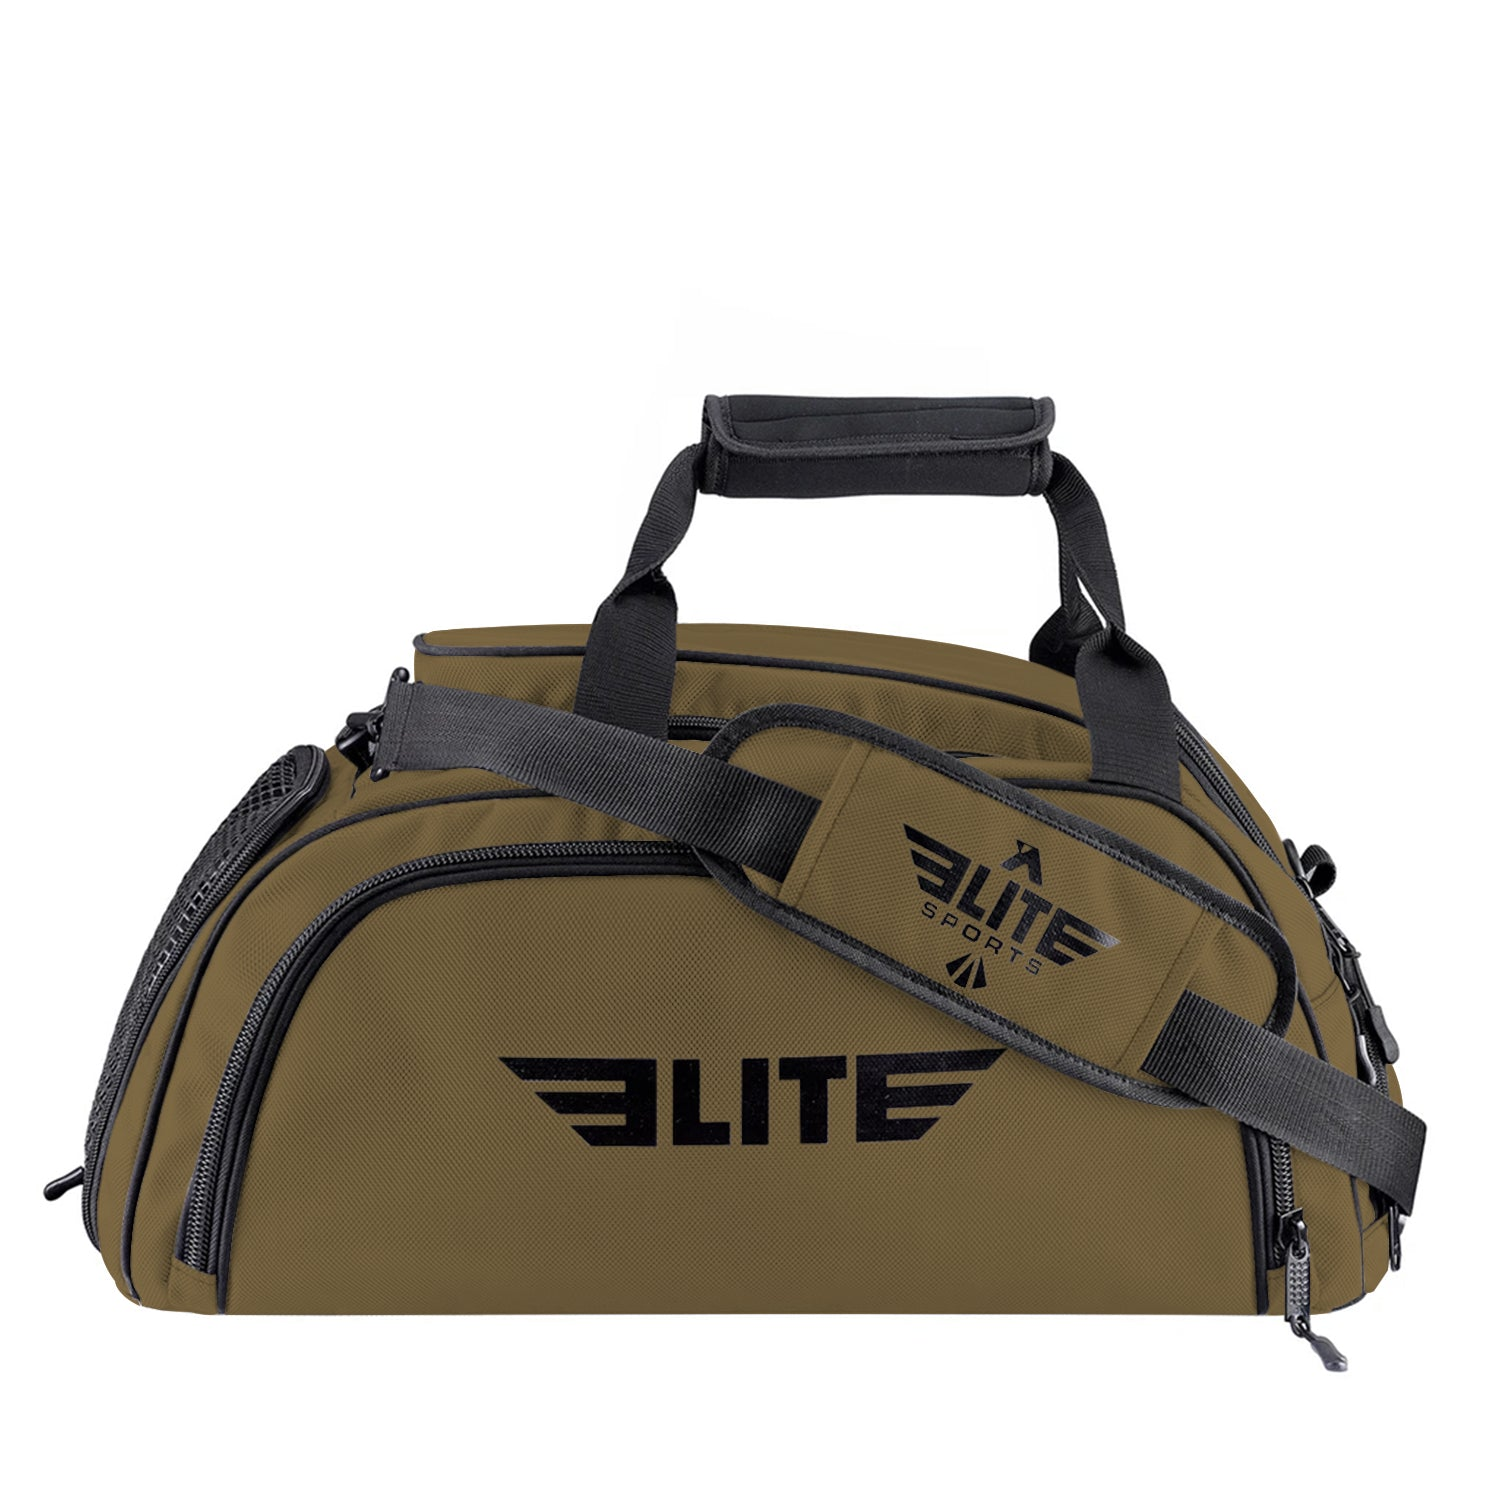 Elite Sports Warrior Series Khaki Medium Duffel Brazilian Jiu Jitsu BJJ Gear Gym Bag & Backpack